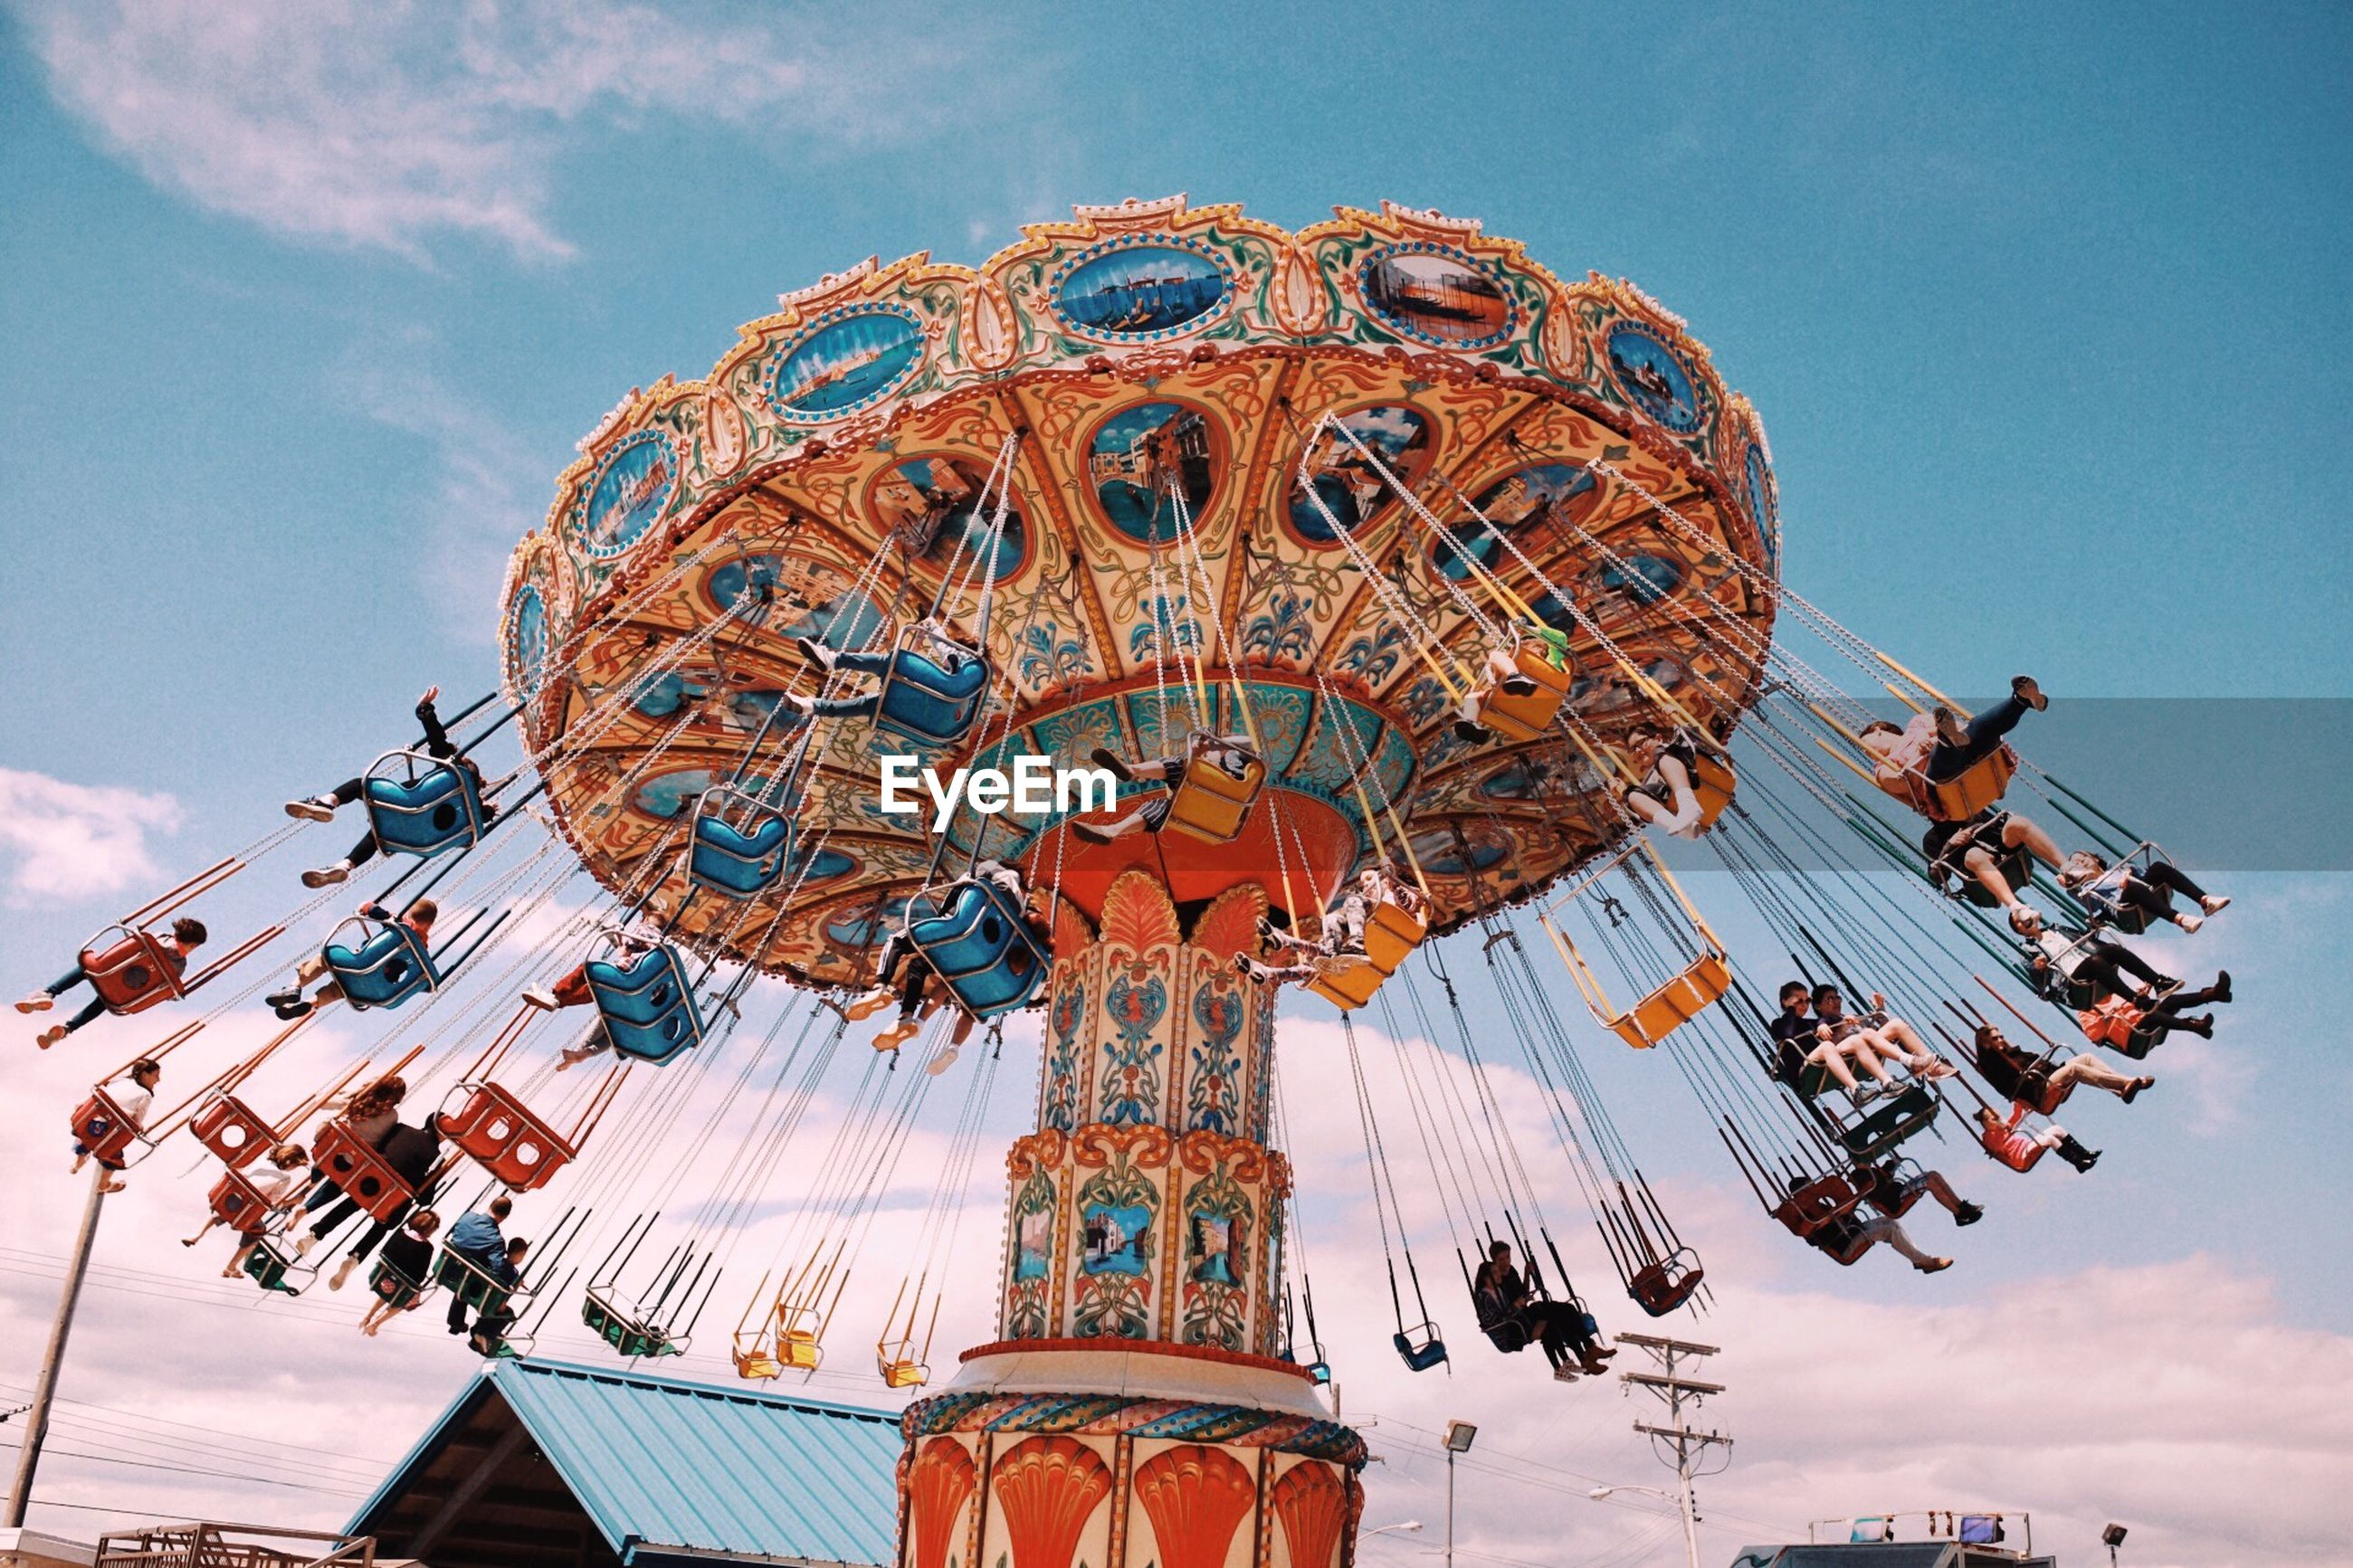 amusement park ride, amusement park, sky, arts culture and entertainment, group of people, chain swing ride, low angle view, nature, real people, leisure activity, cloud - sky, carousel, large group of people, incidental people, day, crowd, architecture, enjoyment, outdoors, built structure, fairground